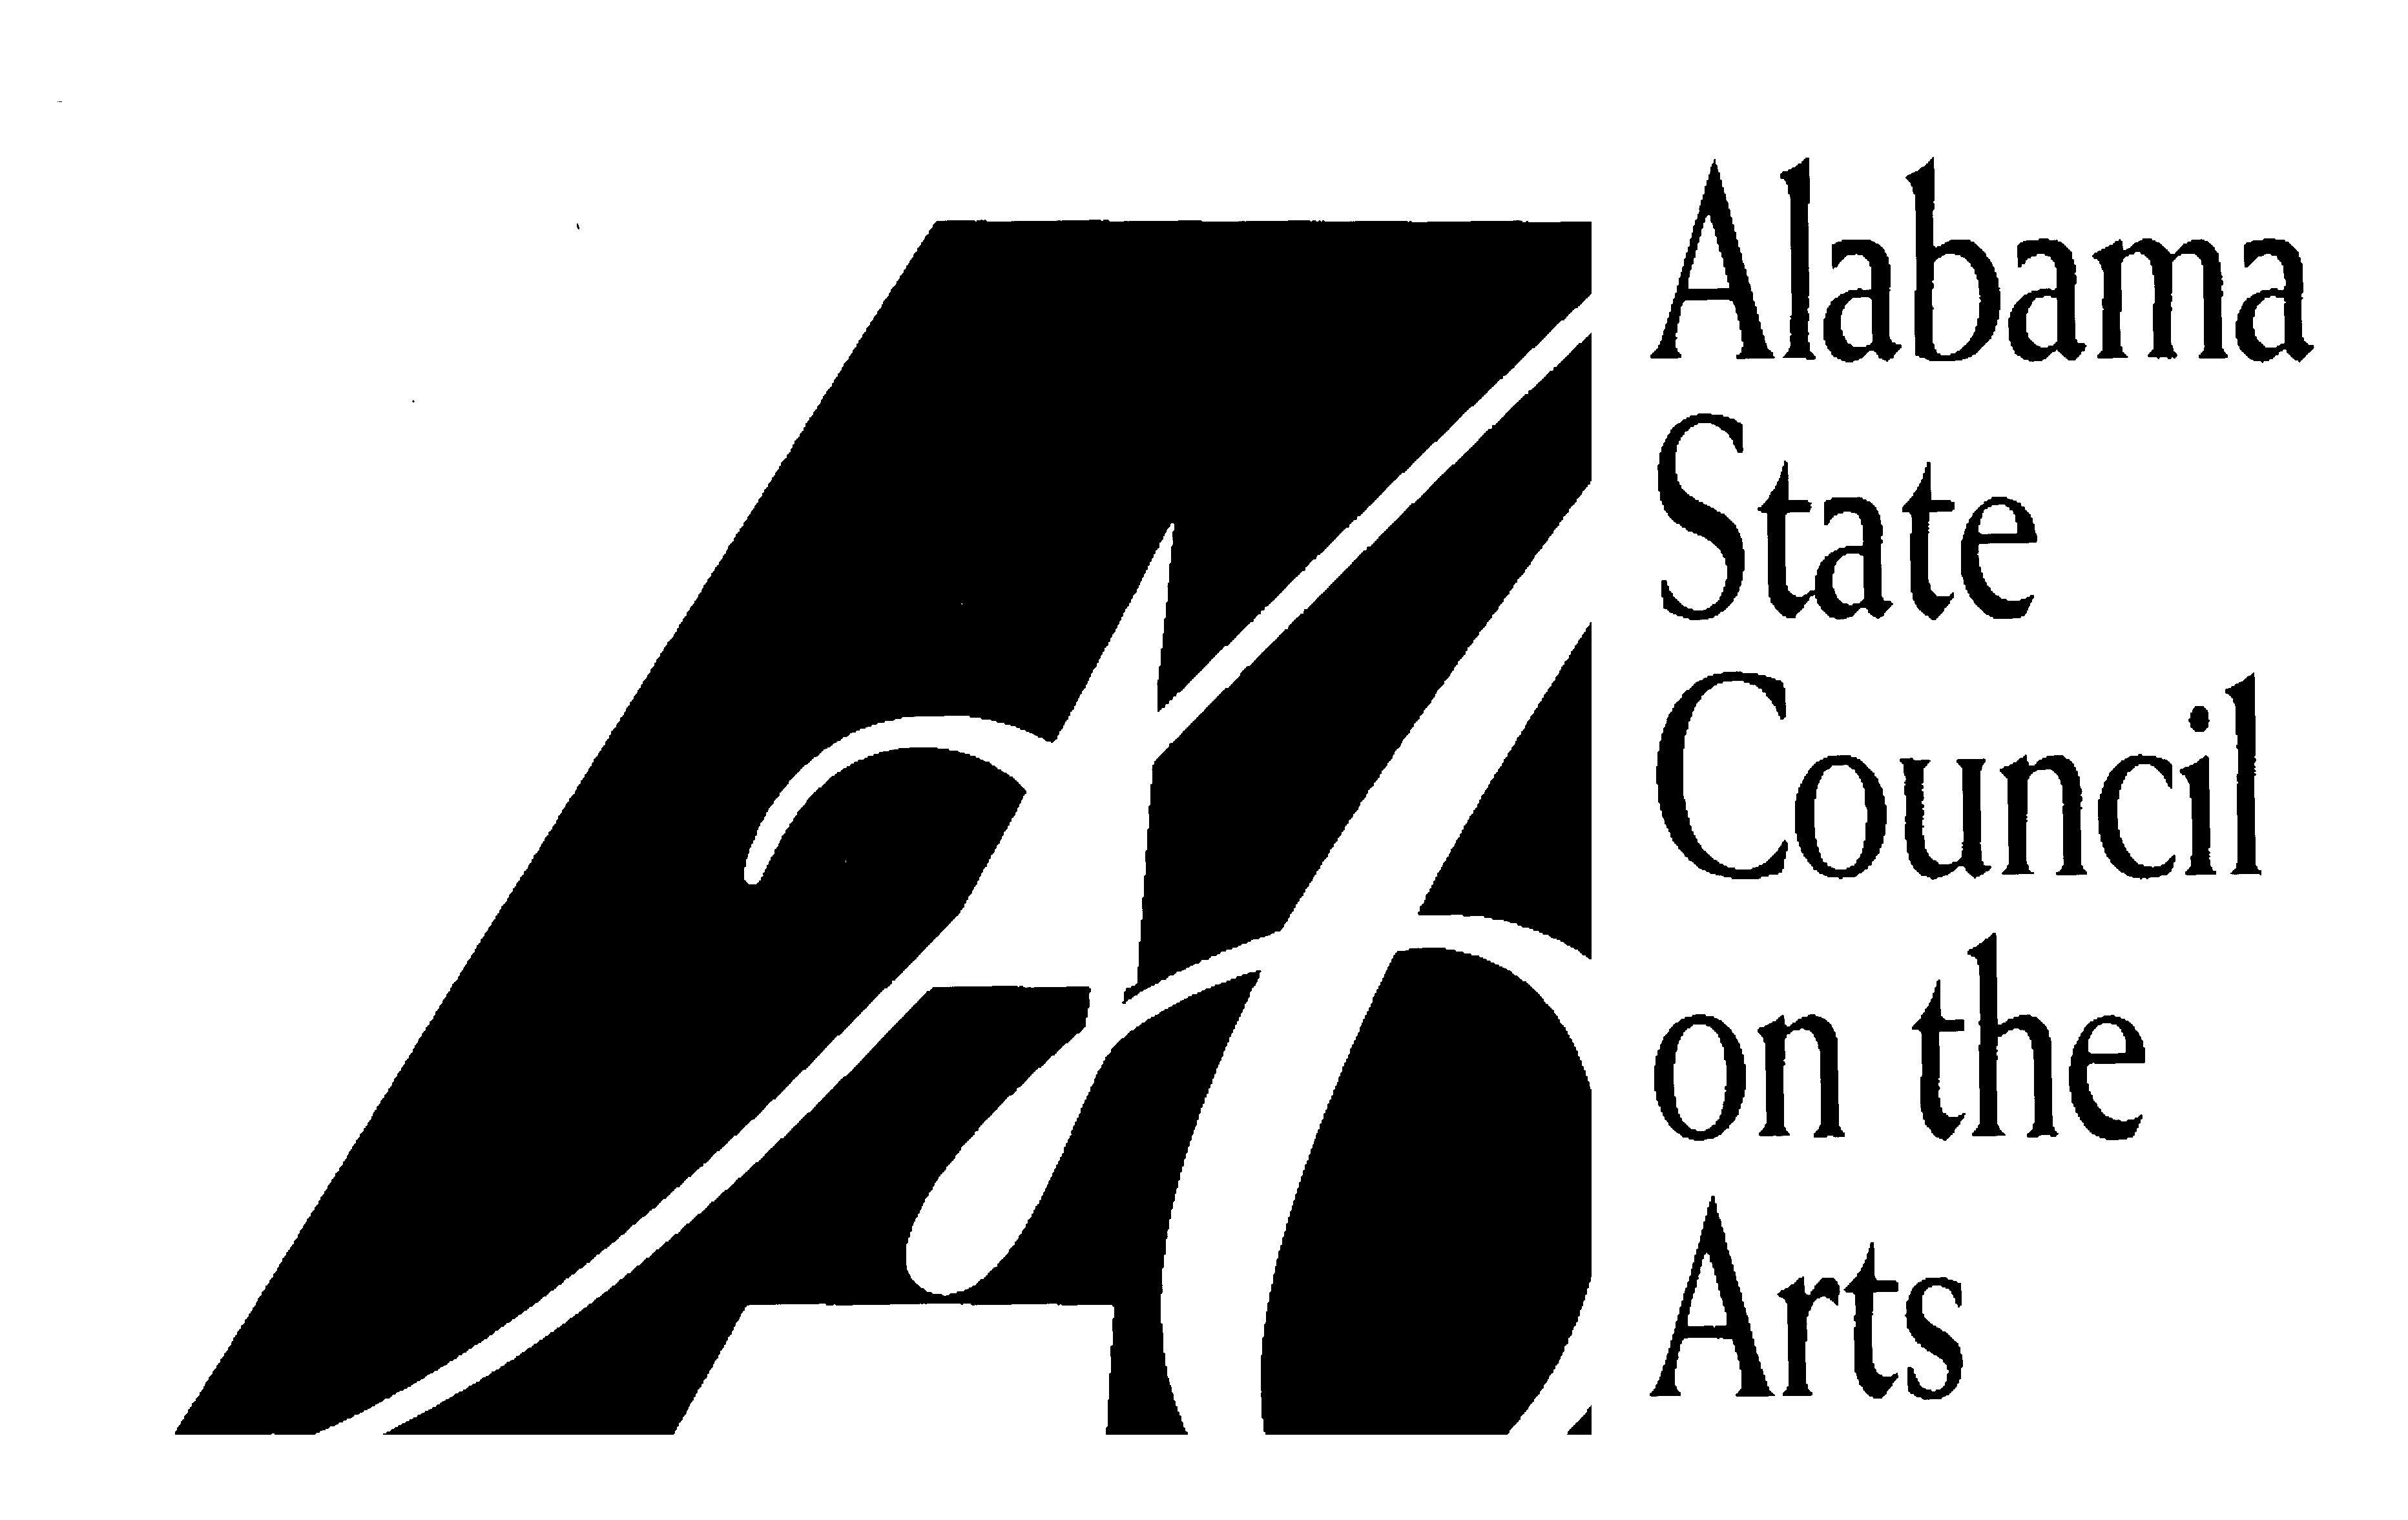 Alabama State Council on the Art